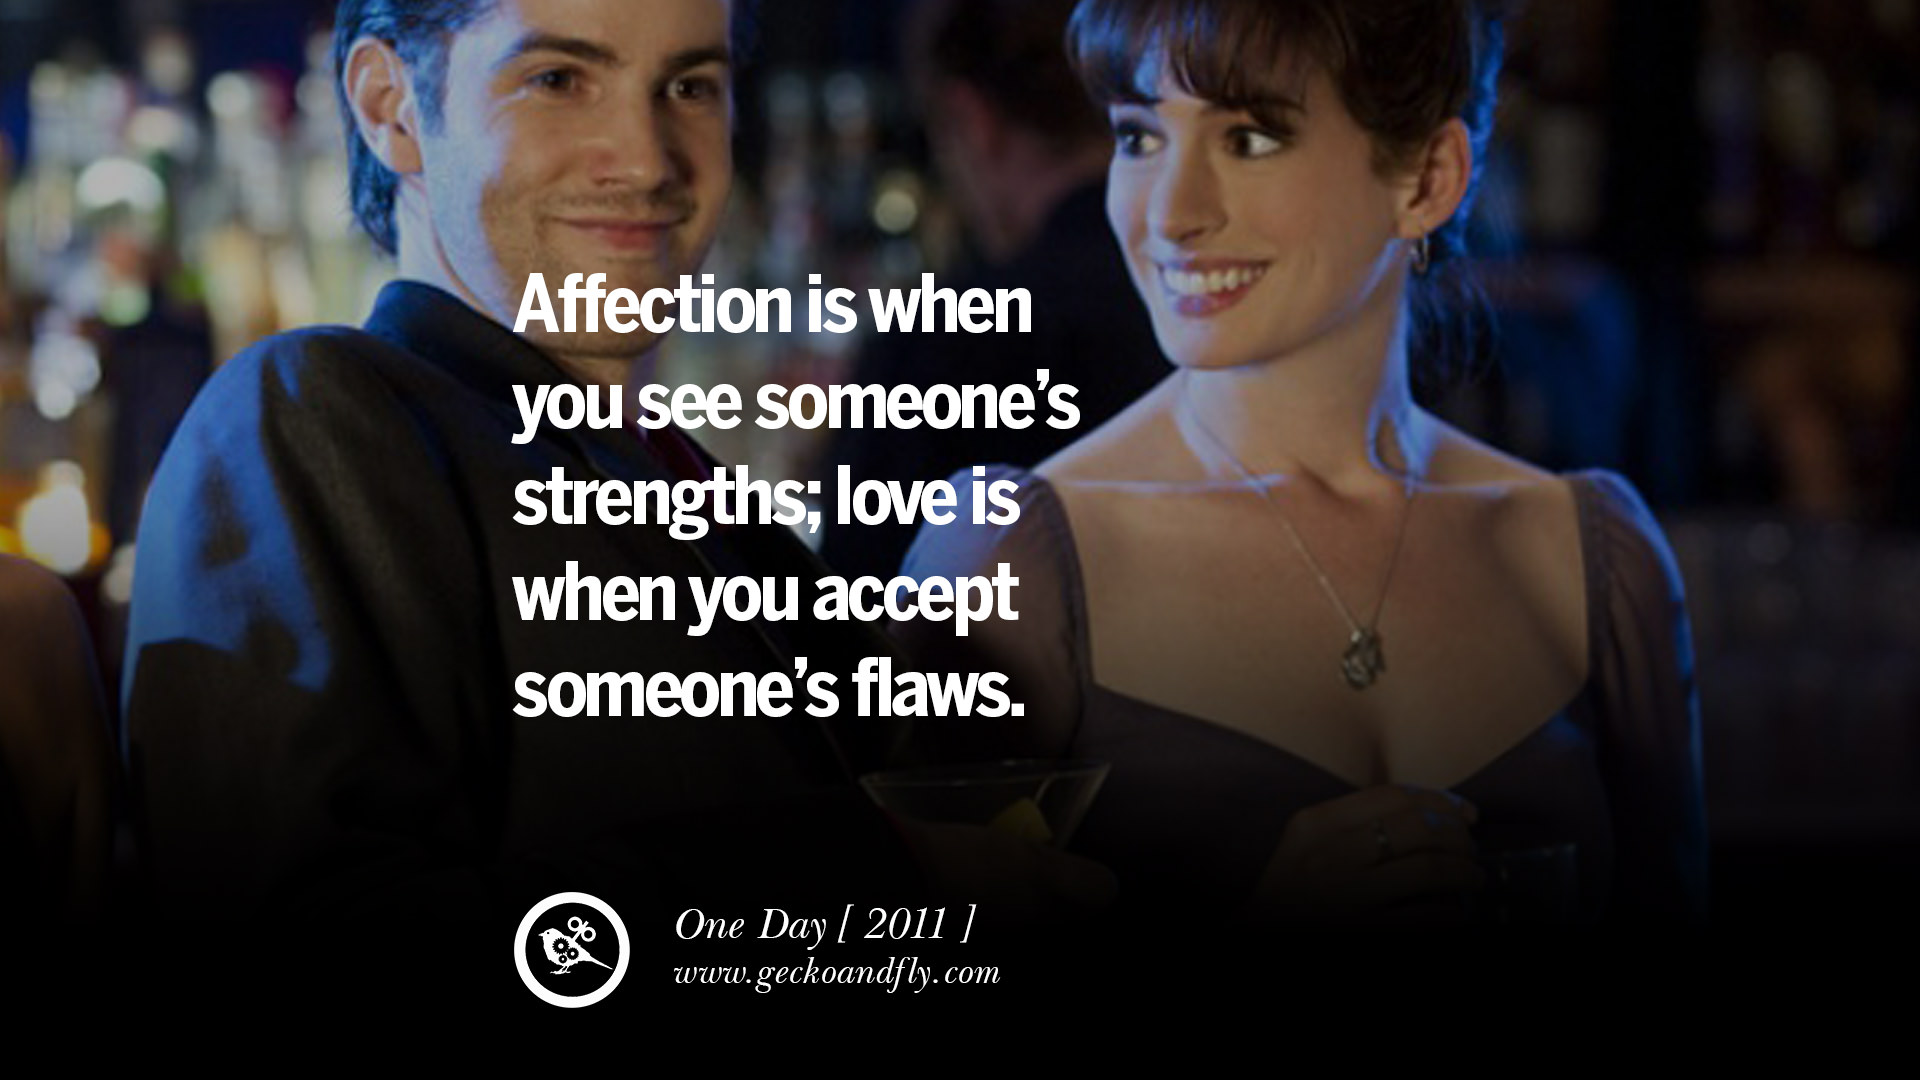 Movie Quotes About Friendship 20 Famous Movie Quotes On Love Life Relationship Friends And